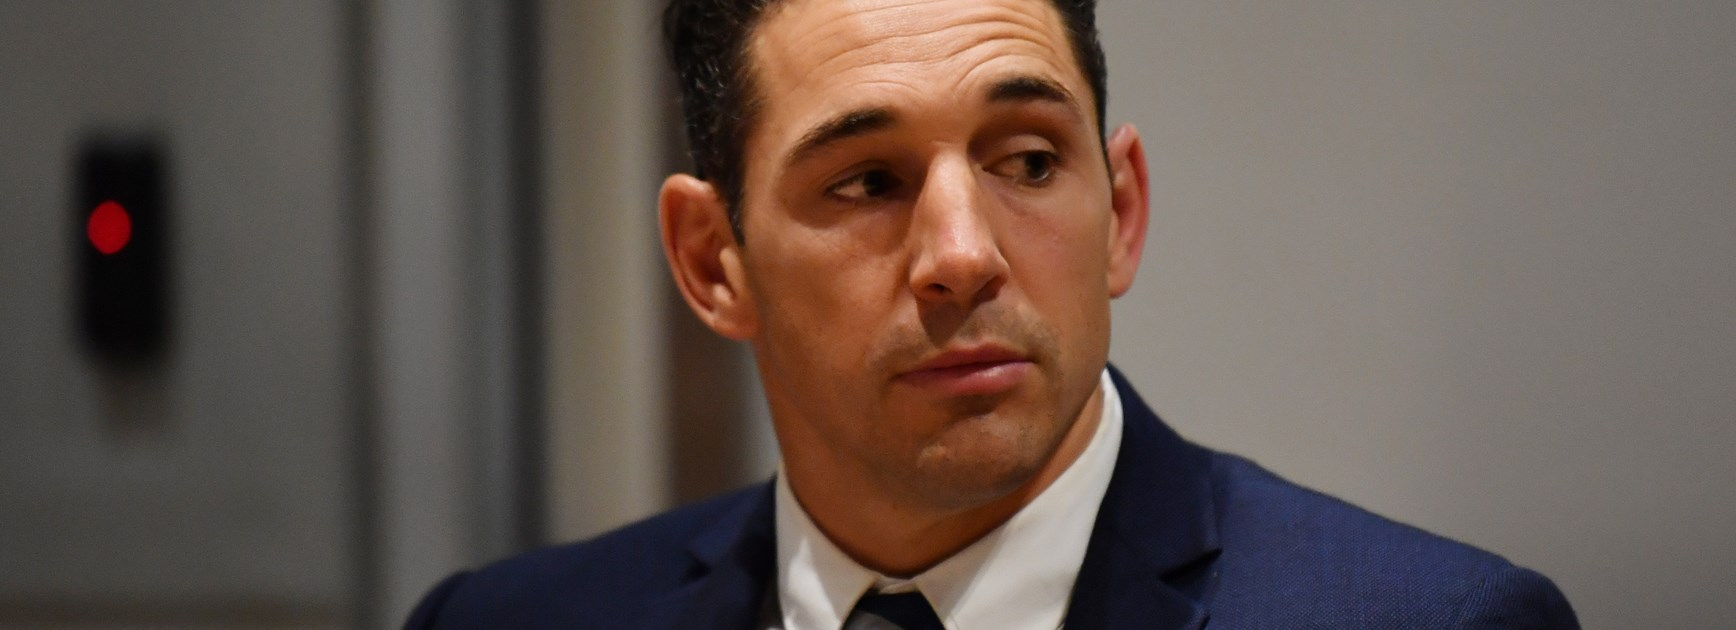 Billy Slater at the judiciary on Tuesday.